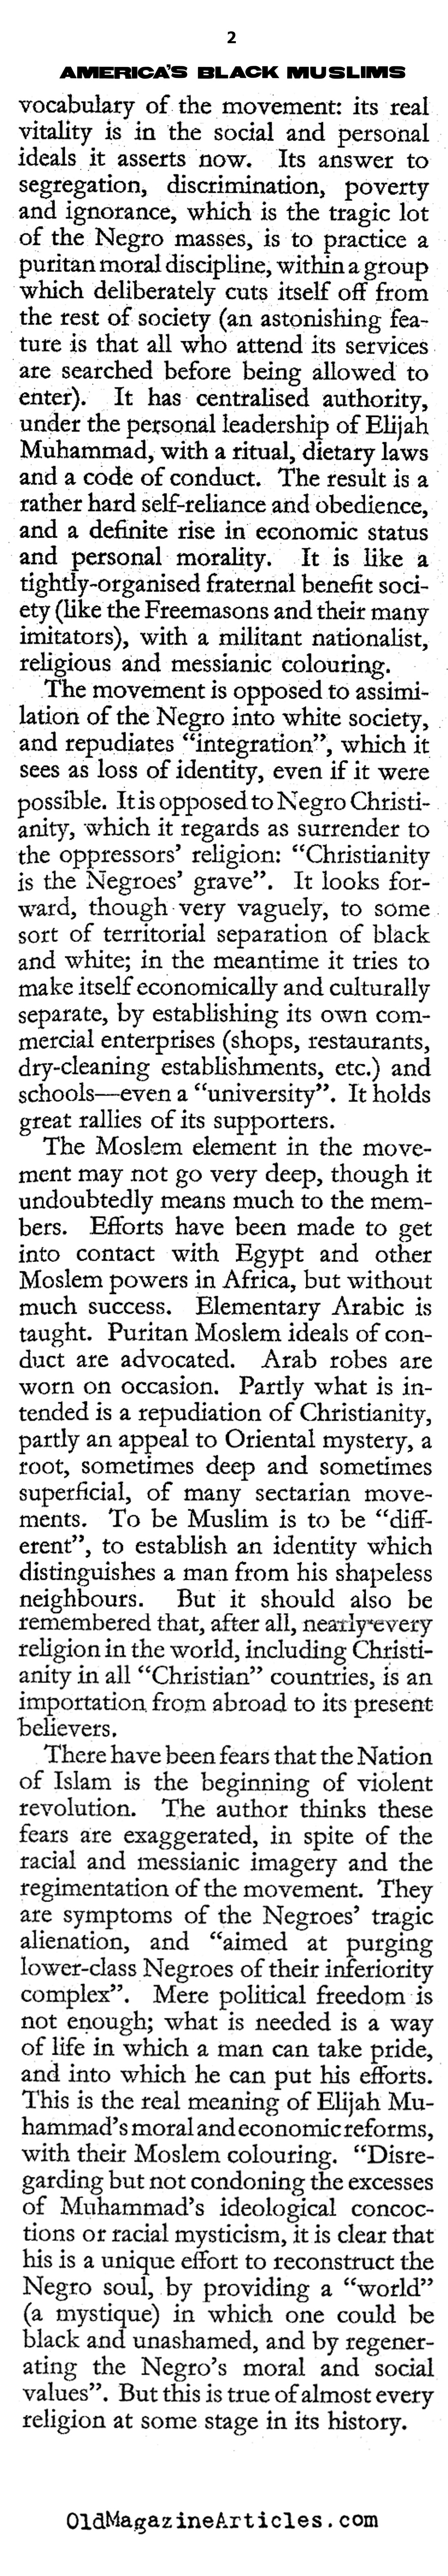 America's Black Muslims (The Hibbert Journal, 1965)